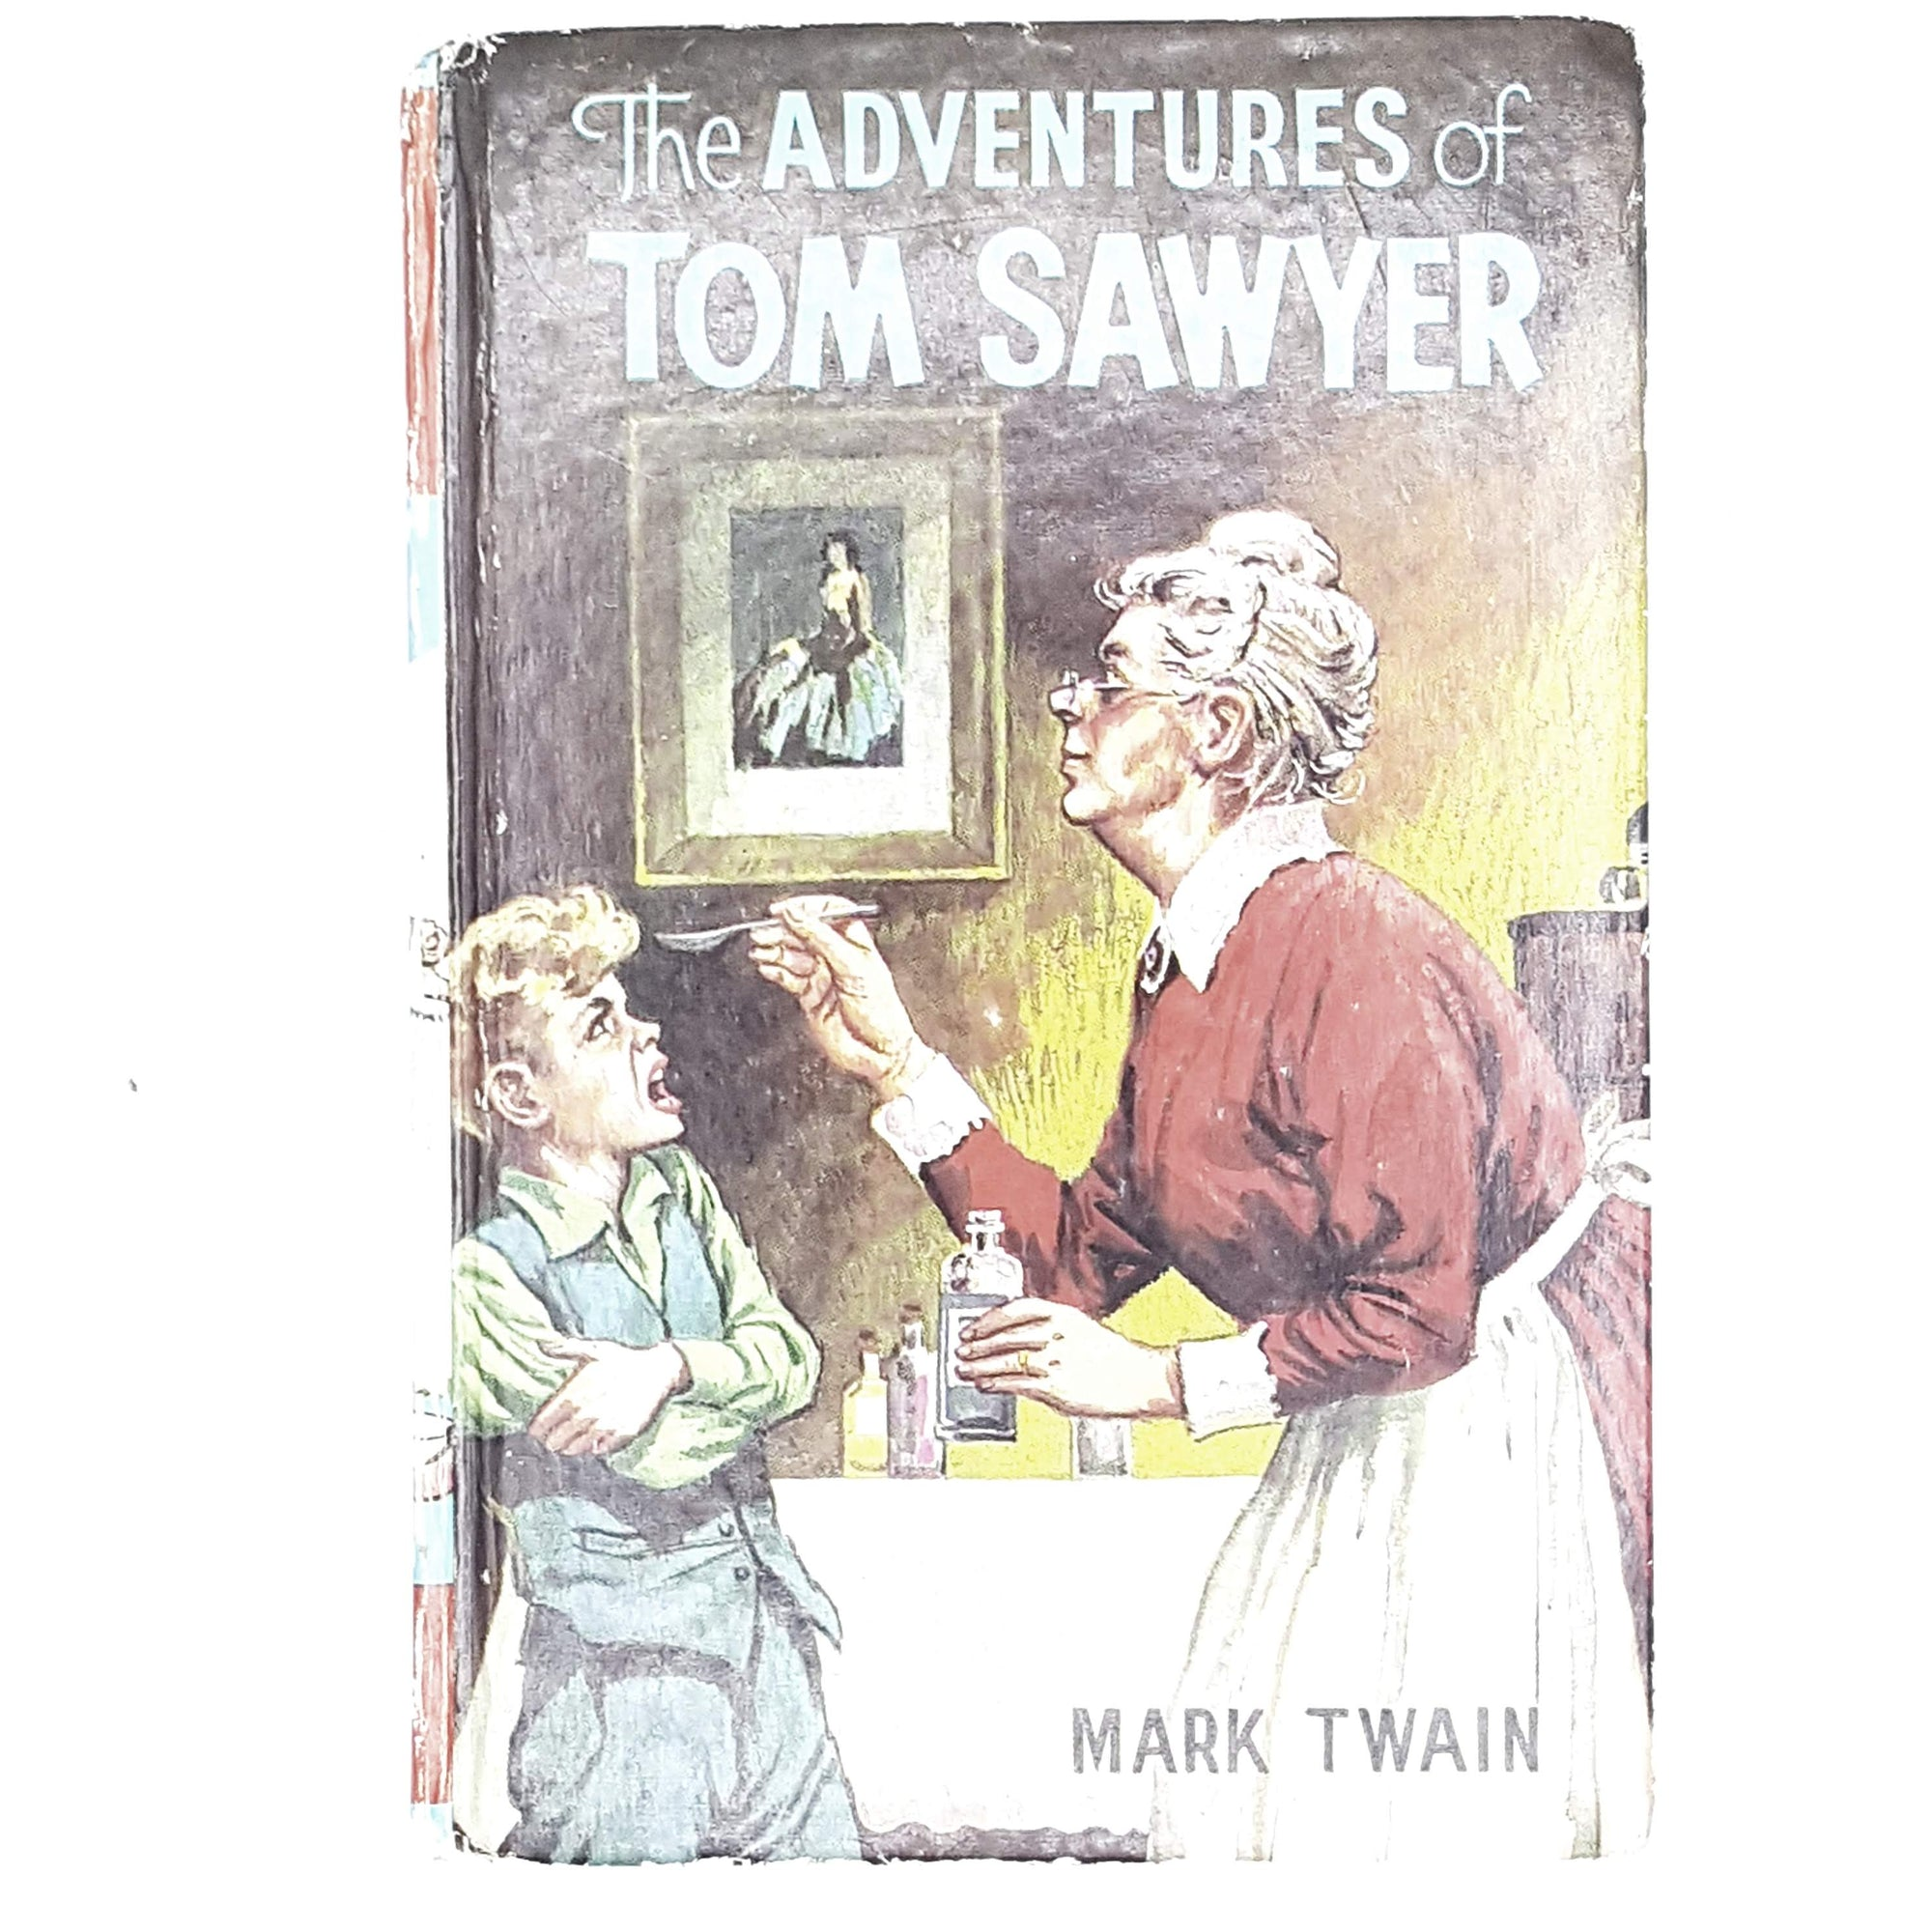 Mark Twain's The Adventure of Tom Sawyer 1974